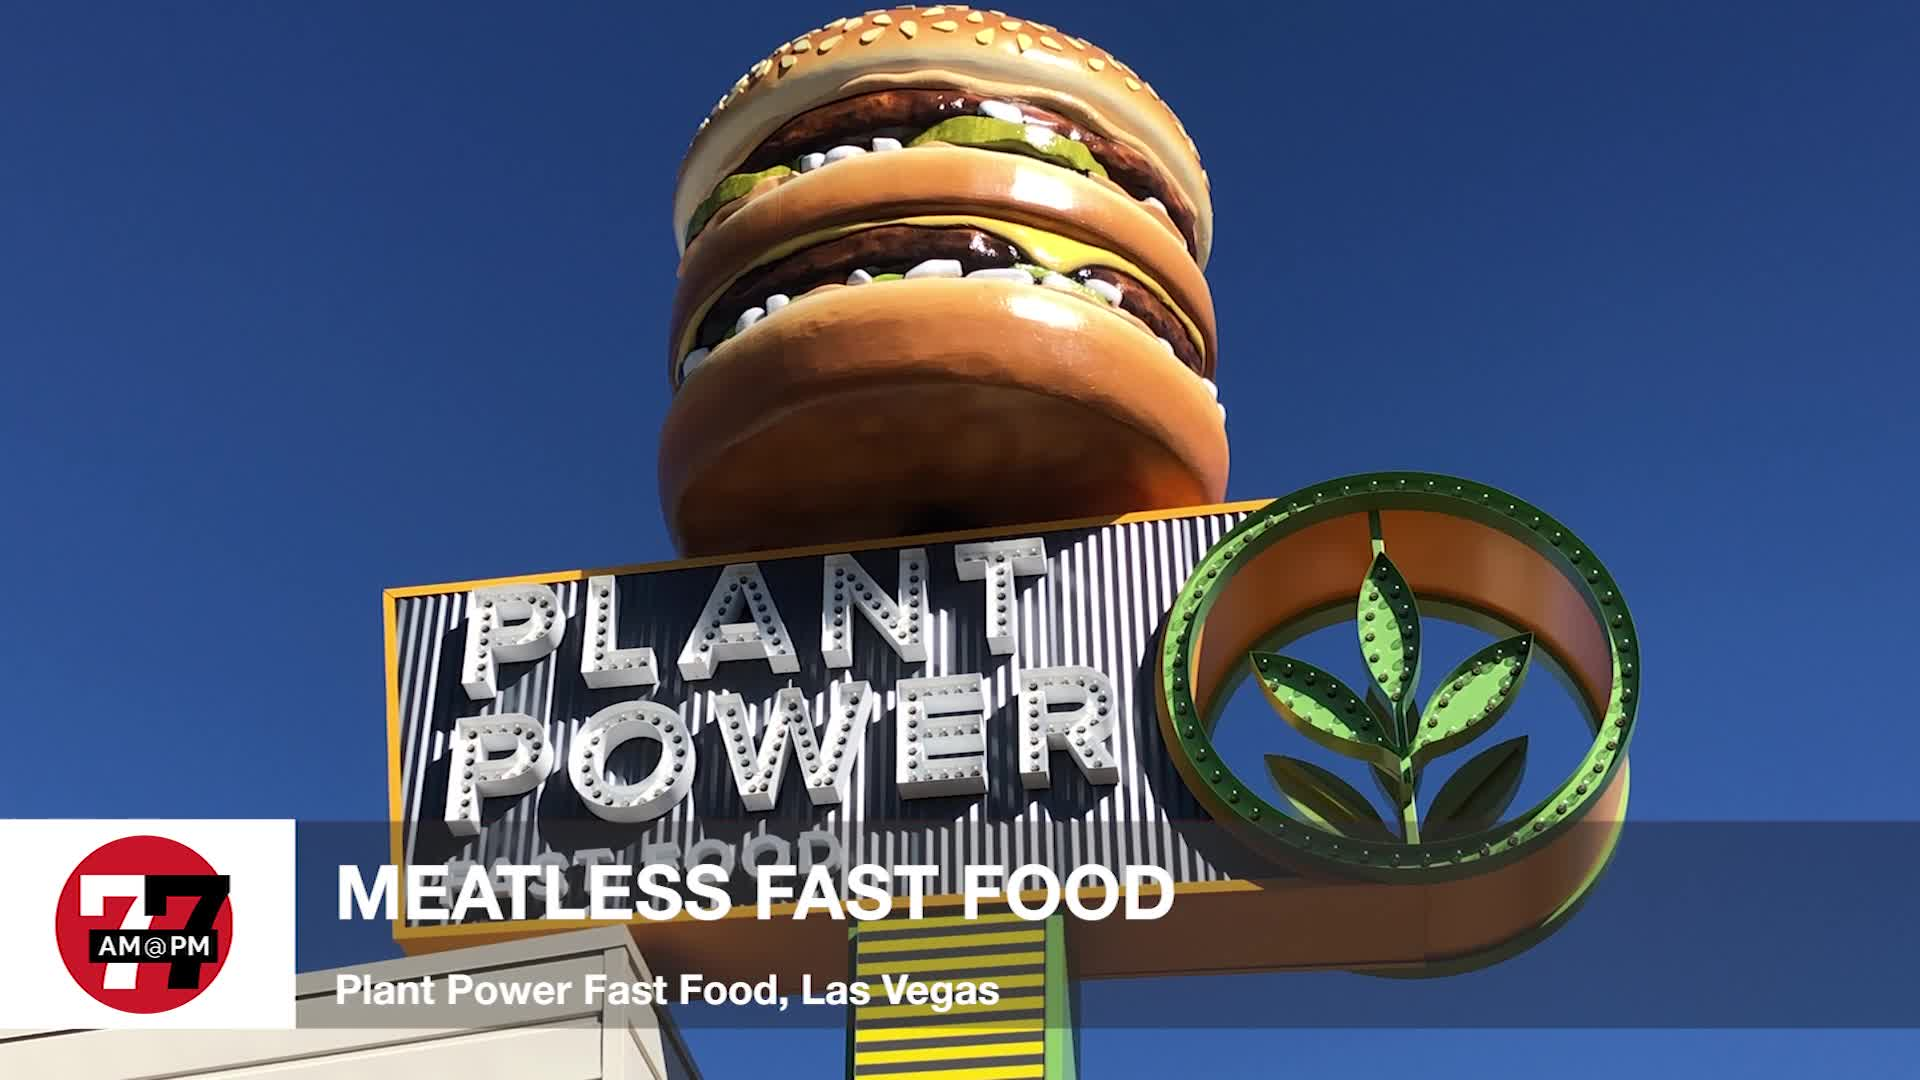 7@7PM Meatless Fast Food